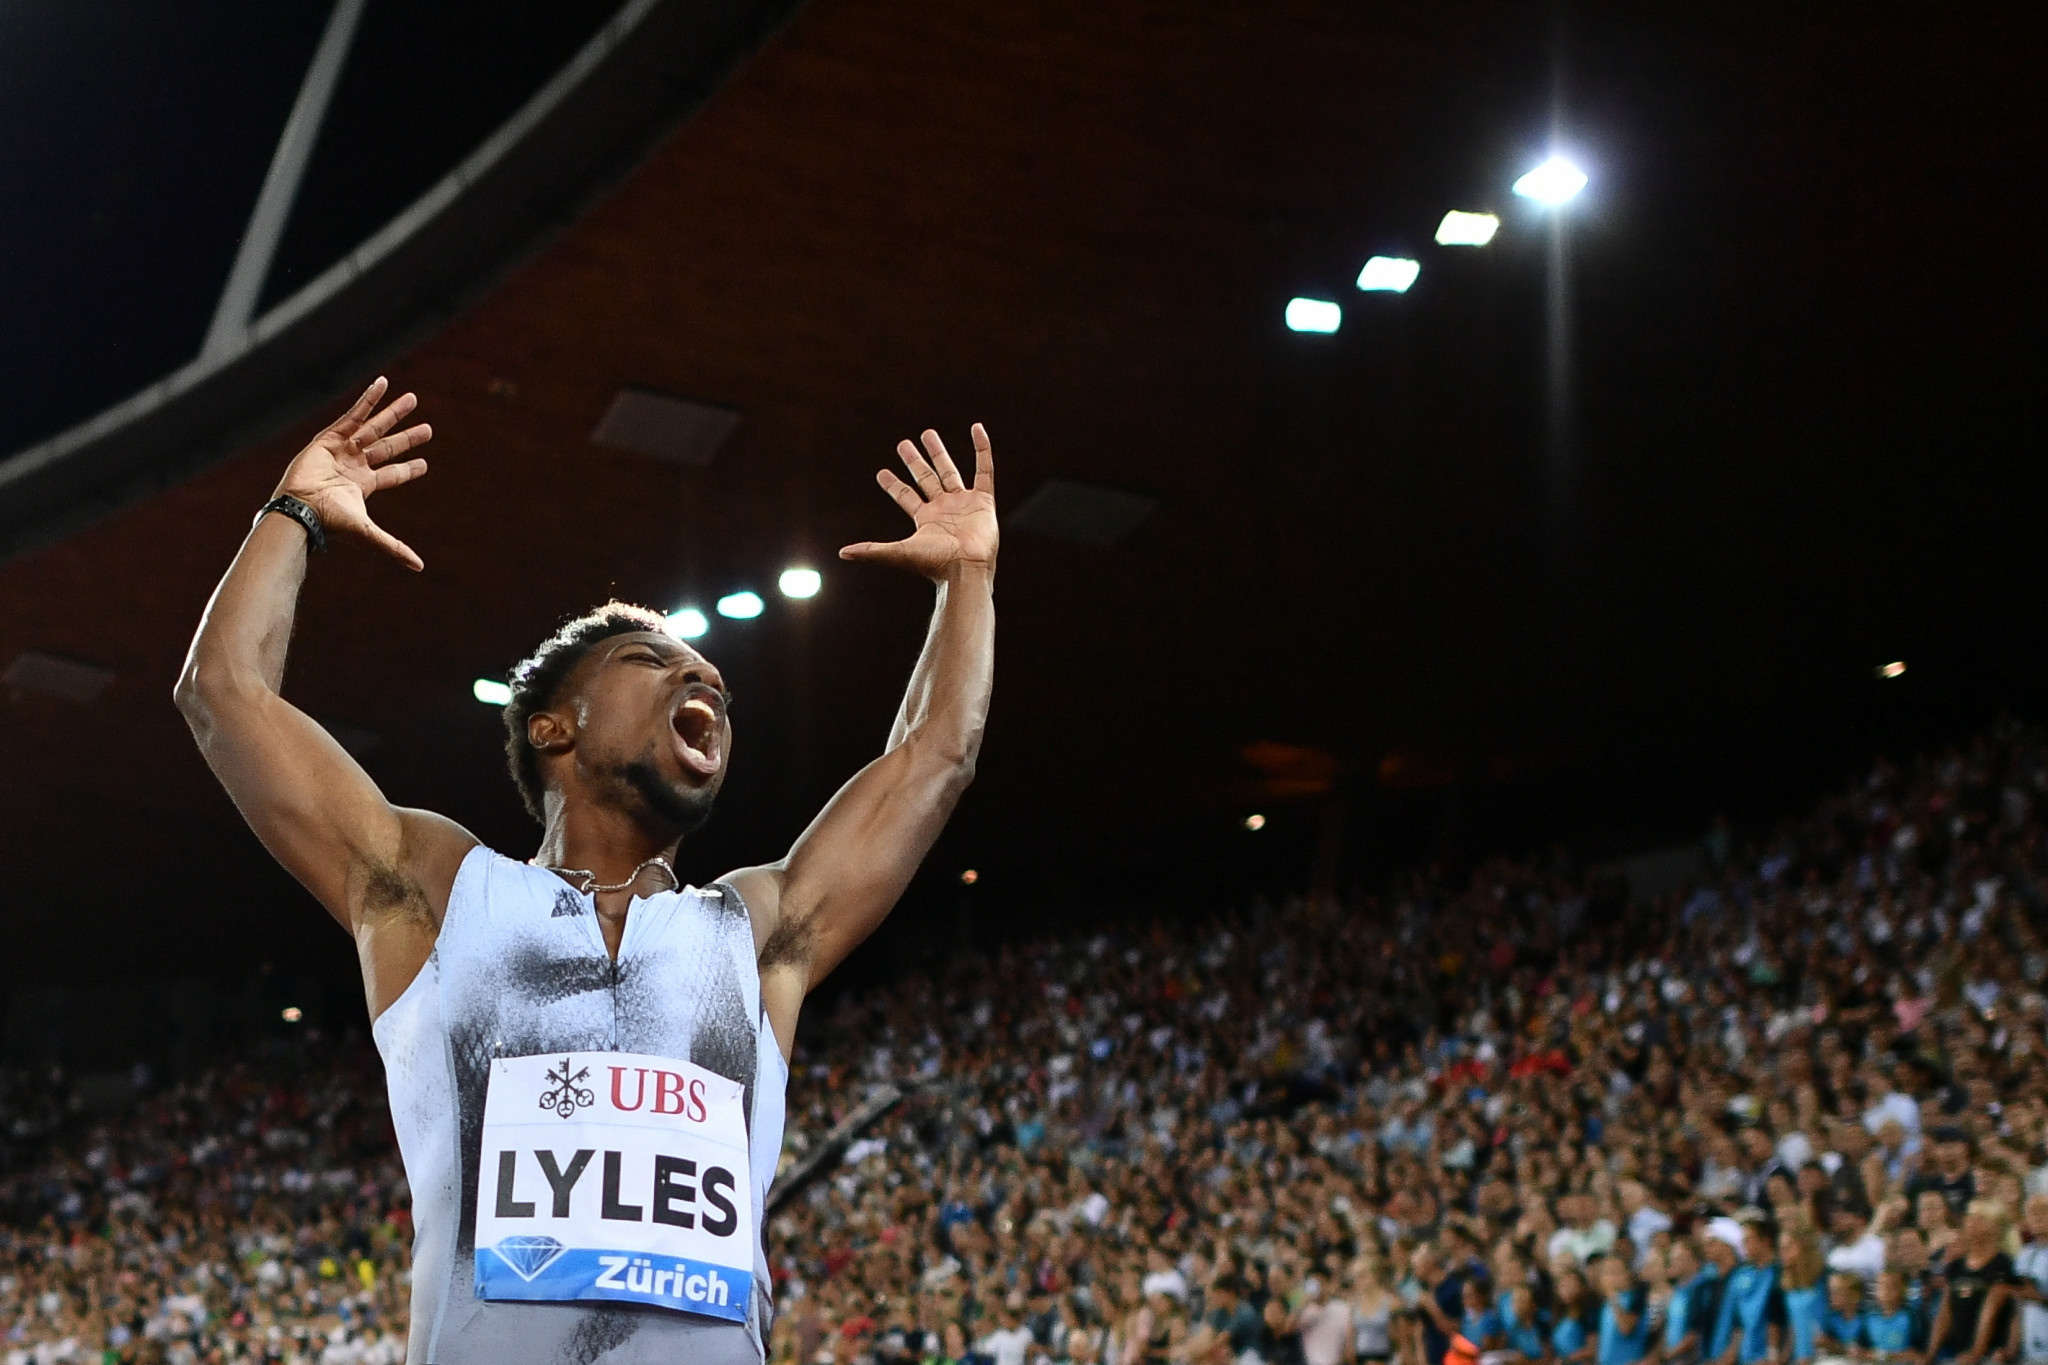 Lyles looking for third consecutive Diamond League 200m title in Brussels